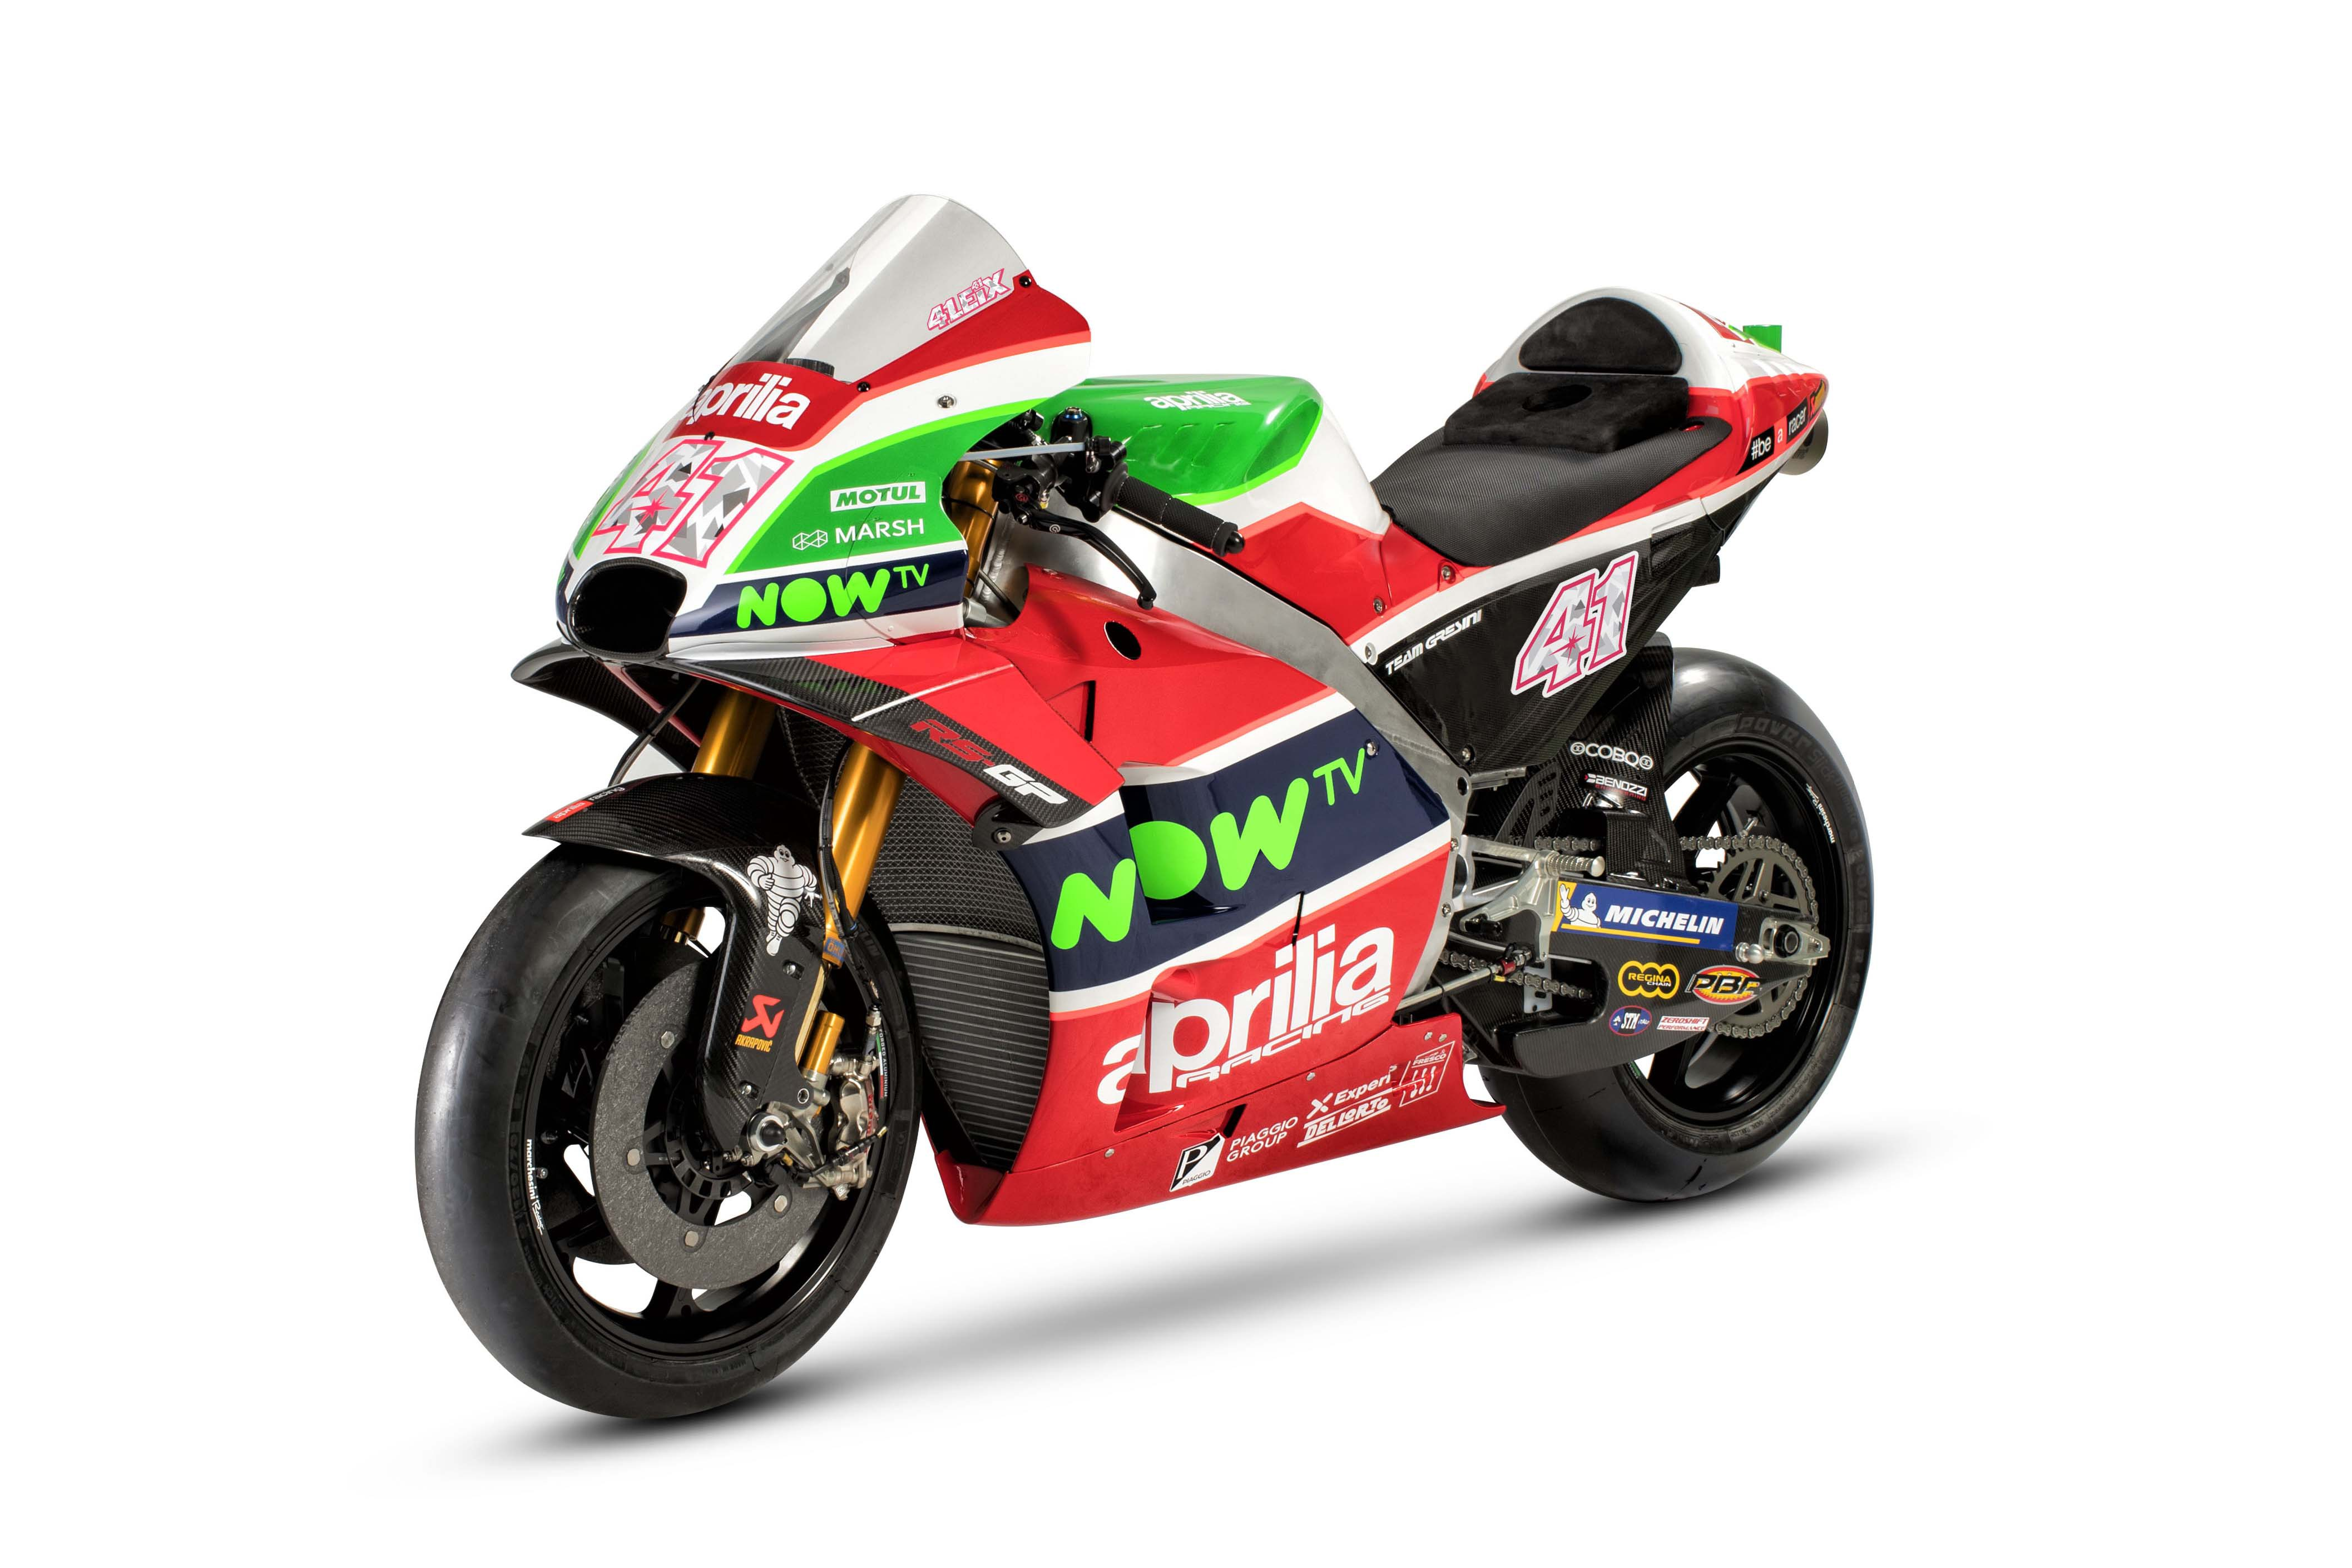 2018 Aprilia RS GP MotoGP race bike 01